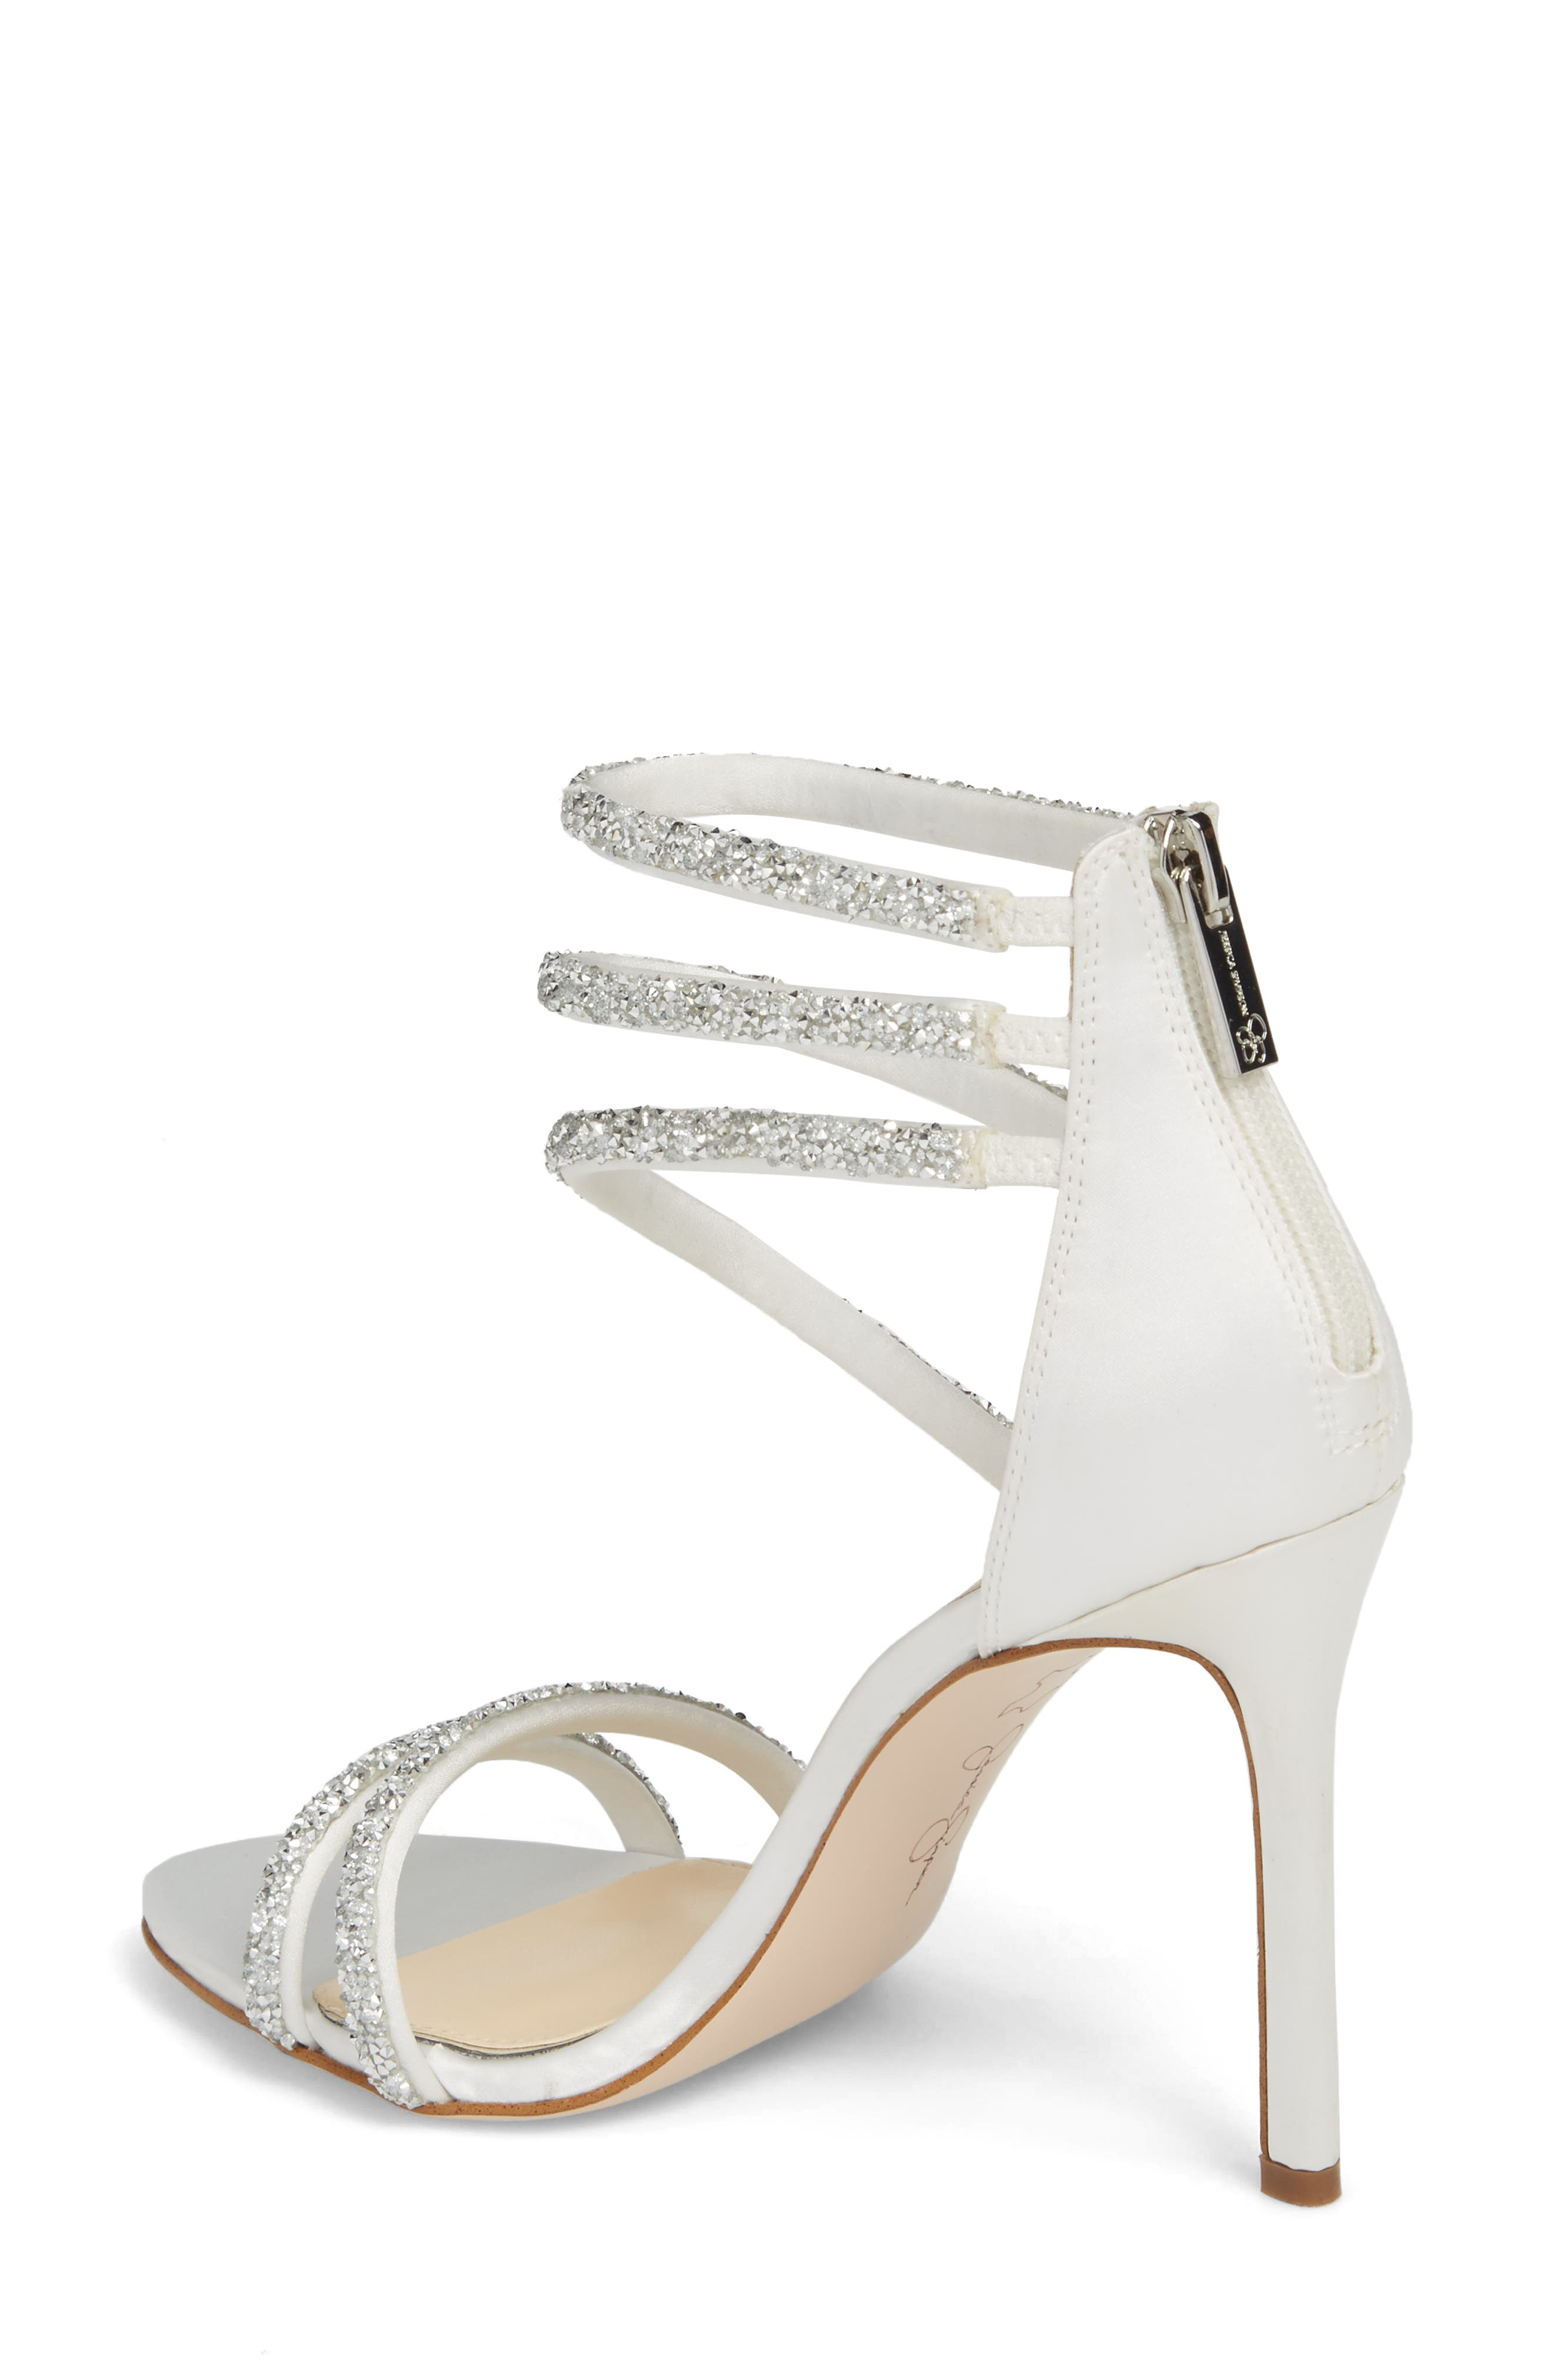 Jamalee Glitter Sandal,                             Alternate thumbnail 2, color,                             WHITE